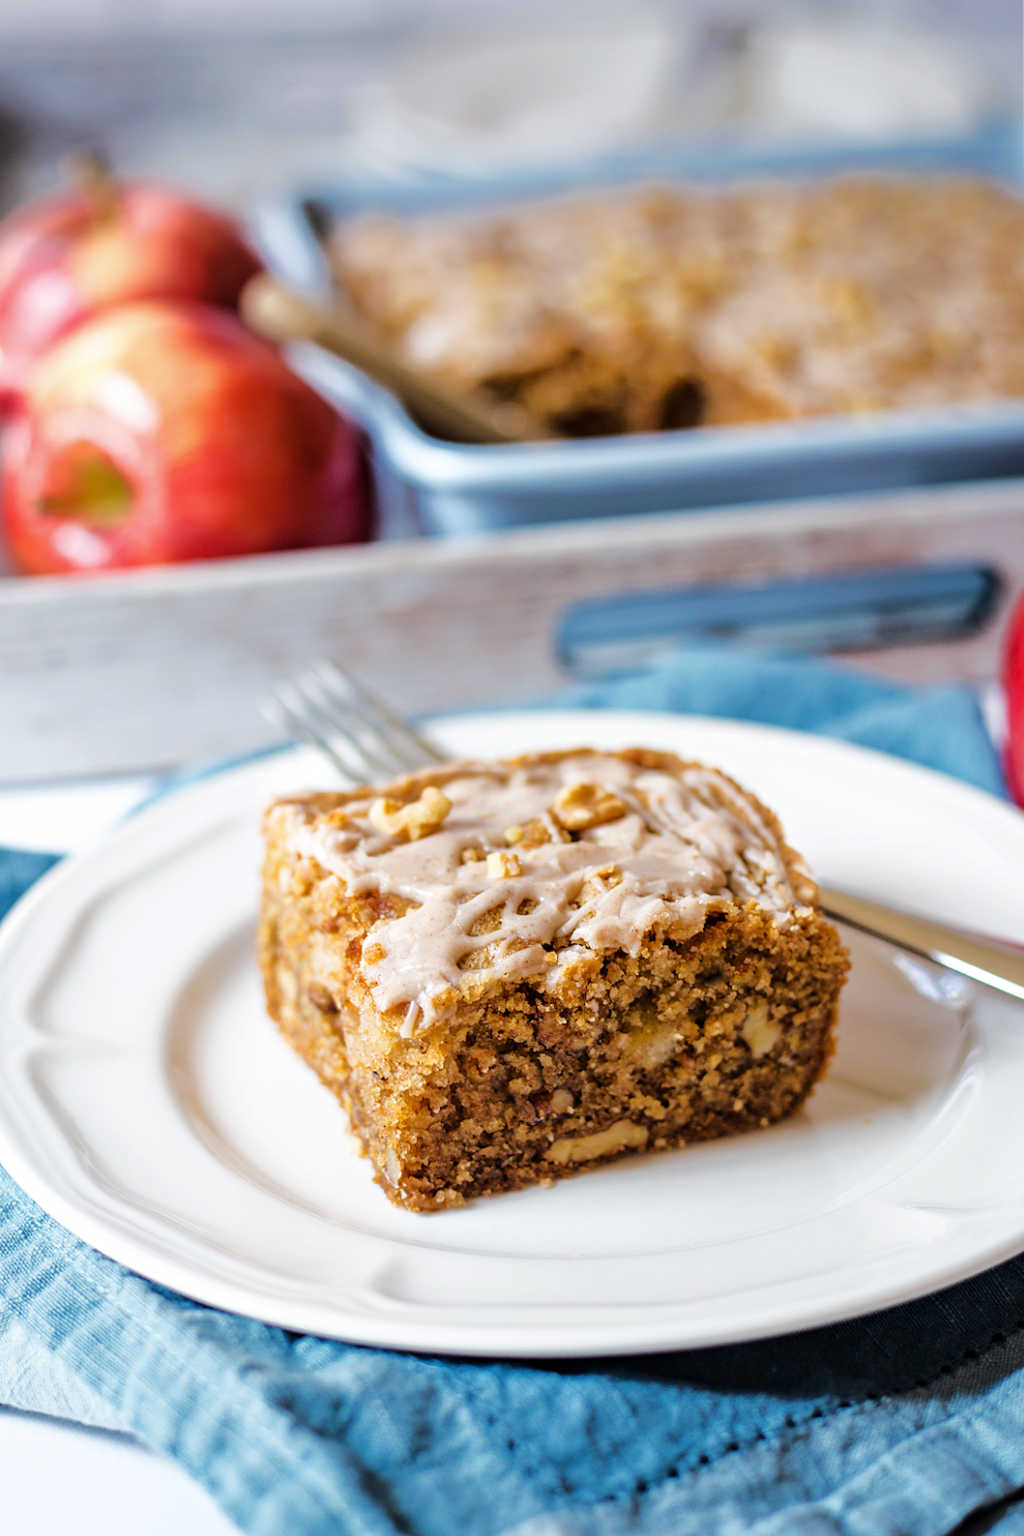 a slice of apple walnut cake on a white plate on a table with a tray of apples.